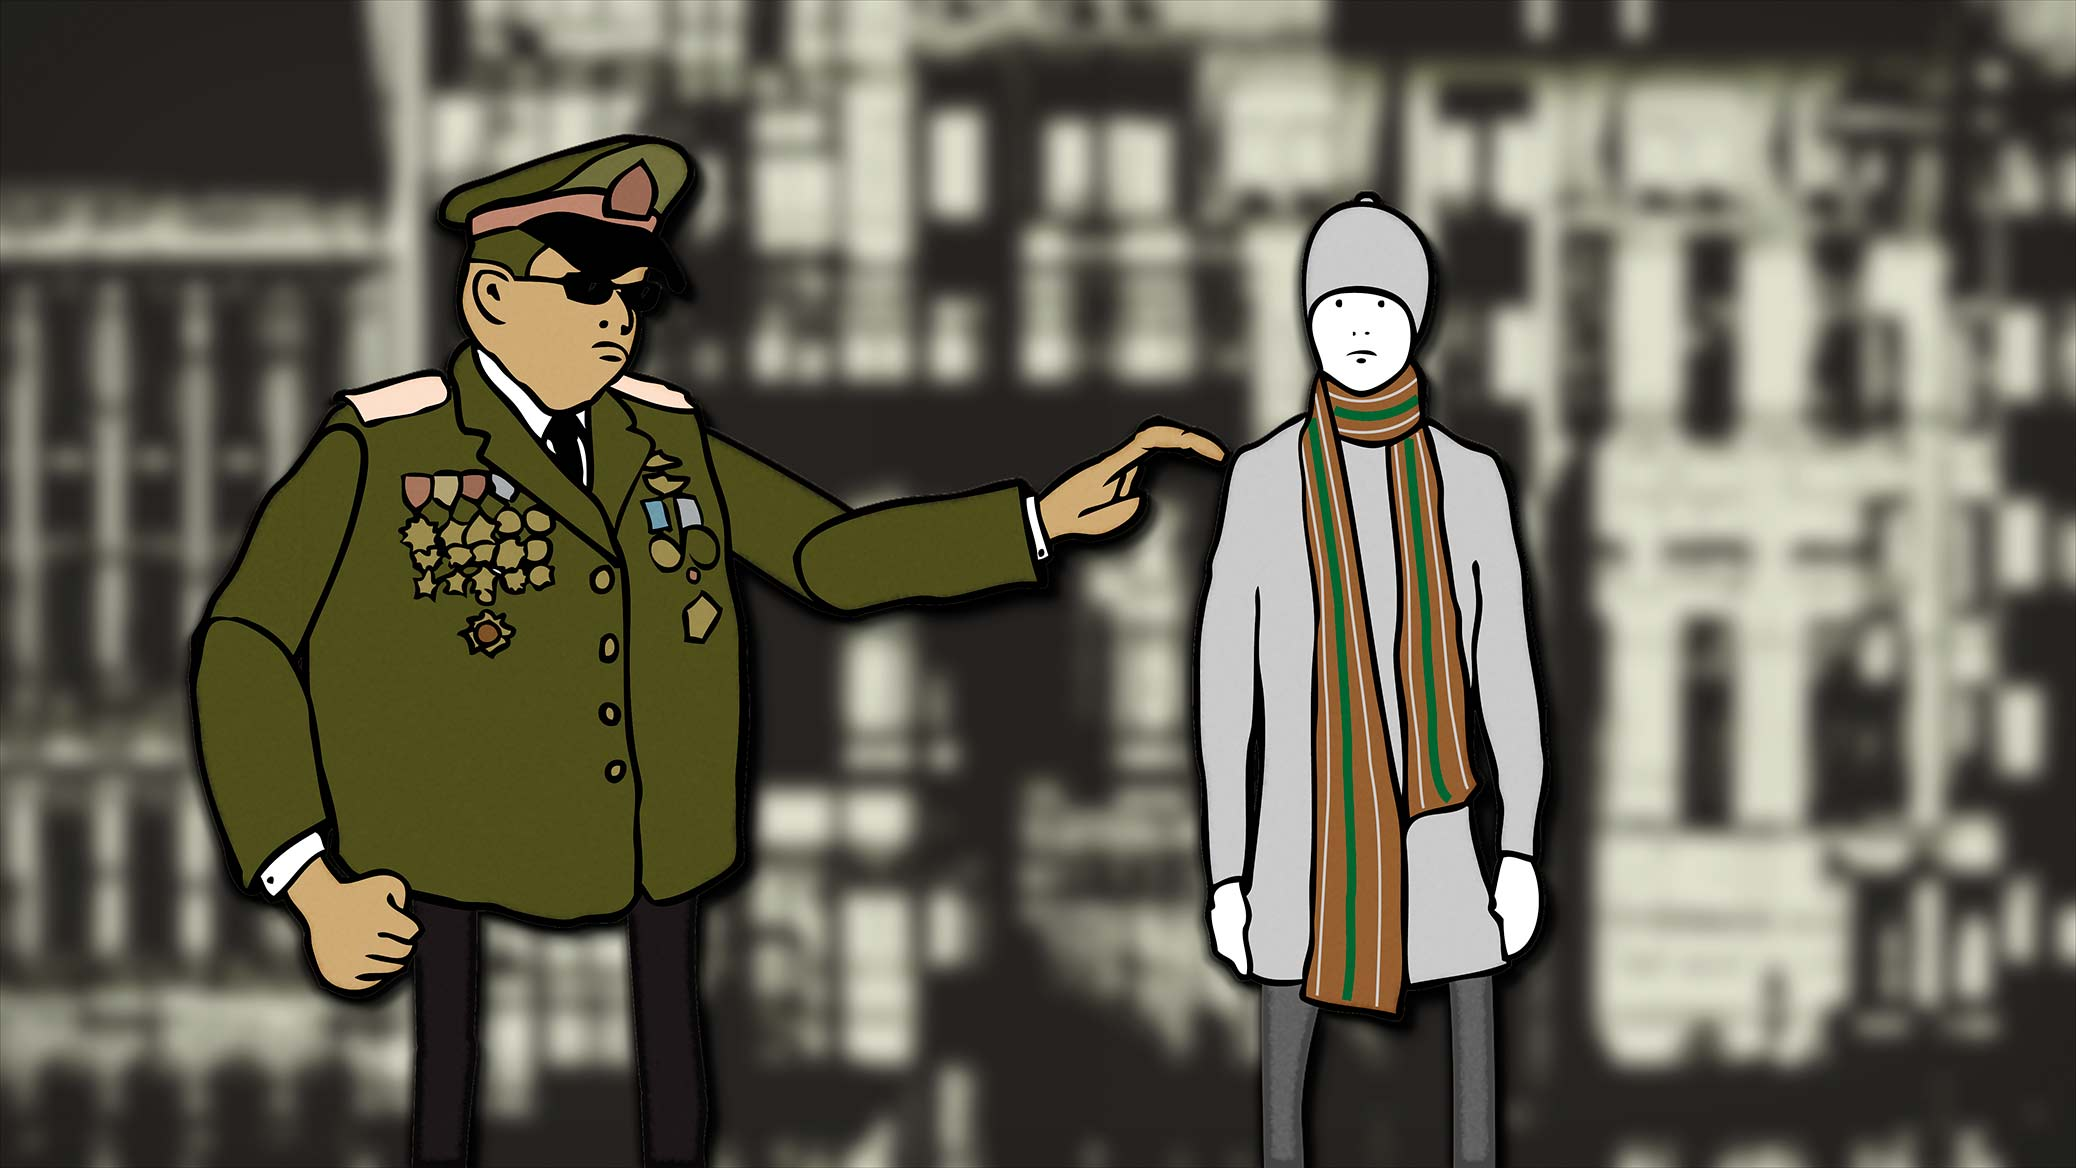 The Warmest Winter in 250 Years, film still from animation. Policeman approaches young man in scarf.